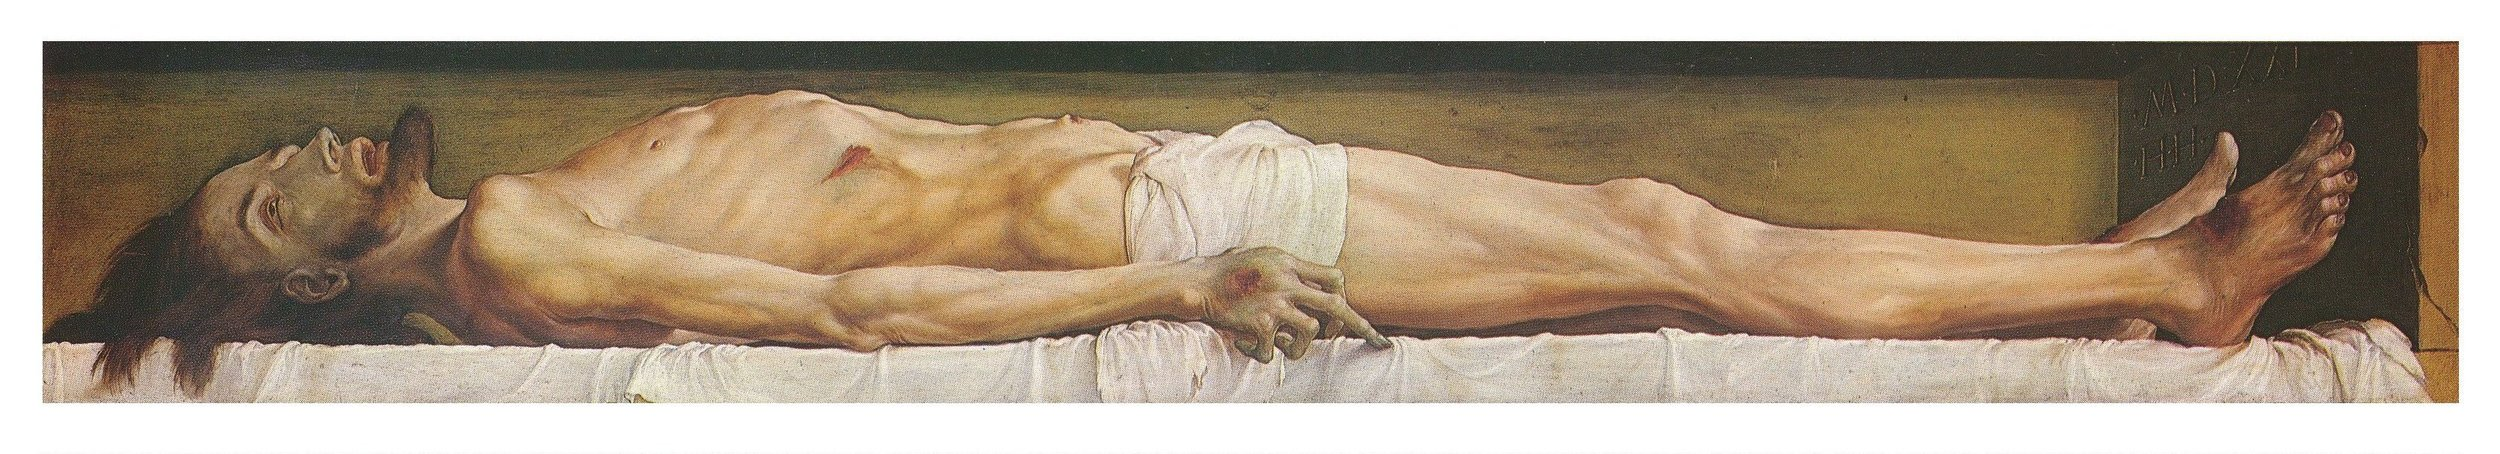 Hans Holbein the Younger.  The Body of the Dead Christ in the Tomb.